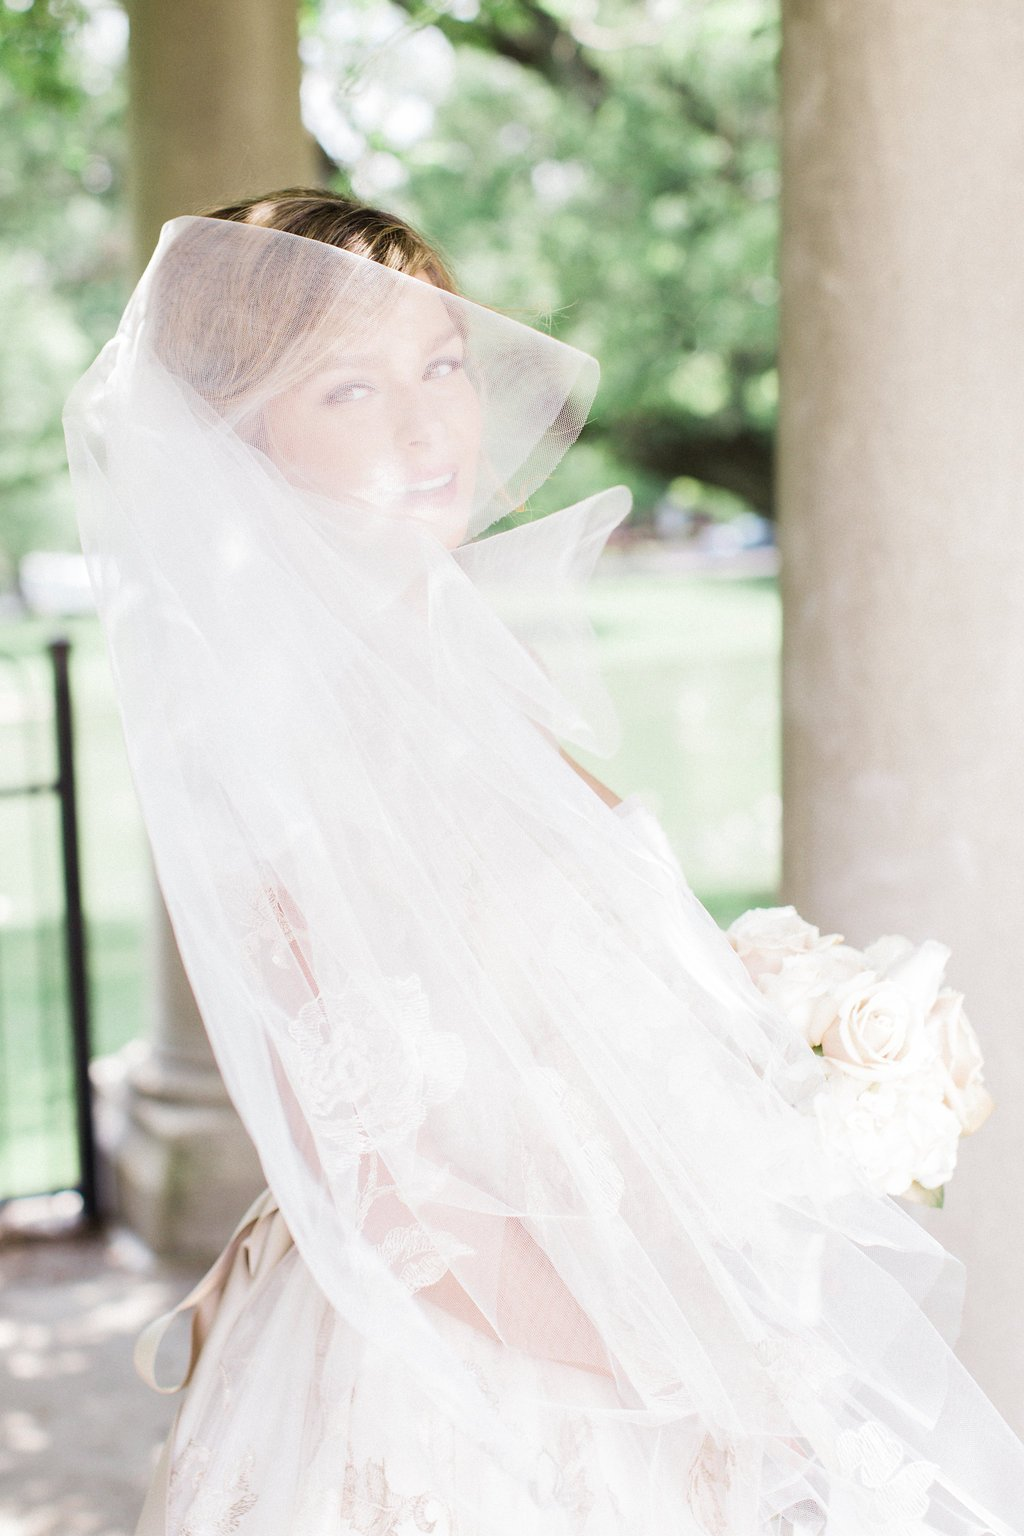 Bride's veil blowing in the wind across her face